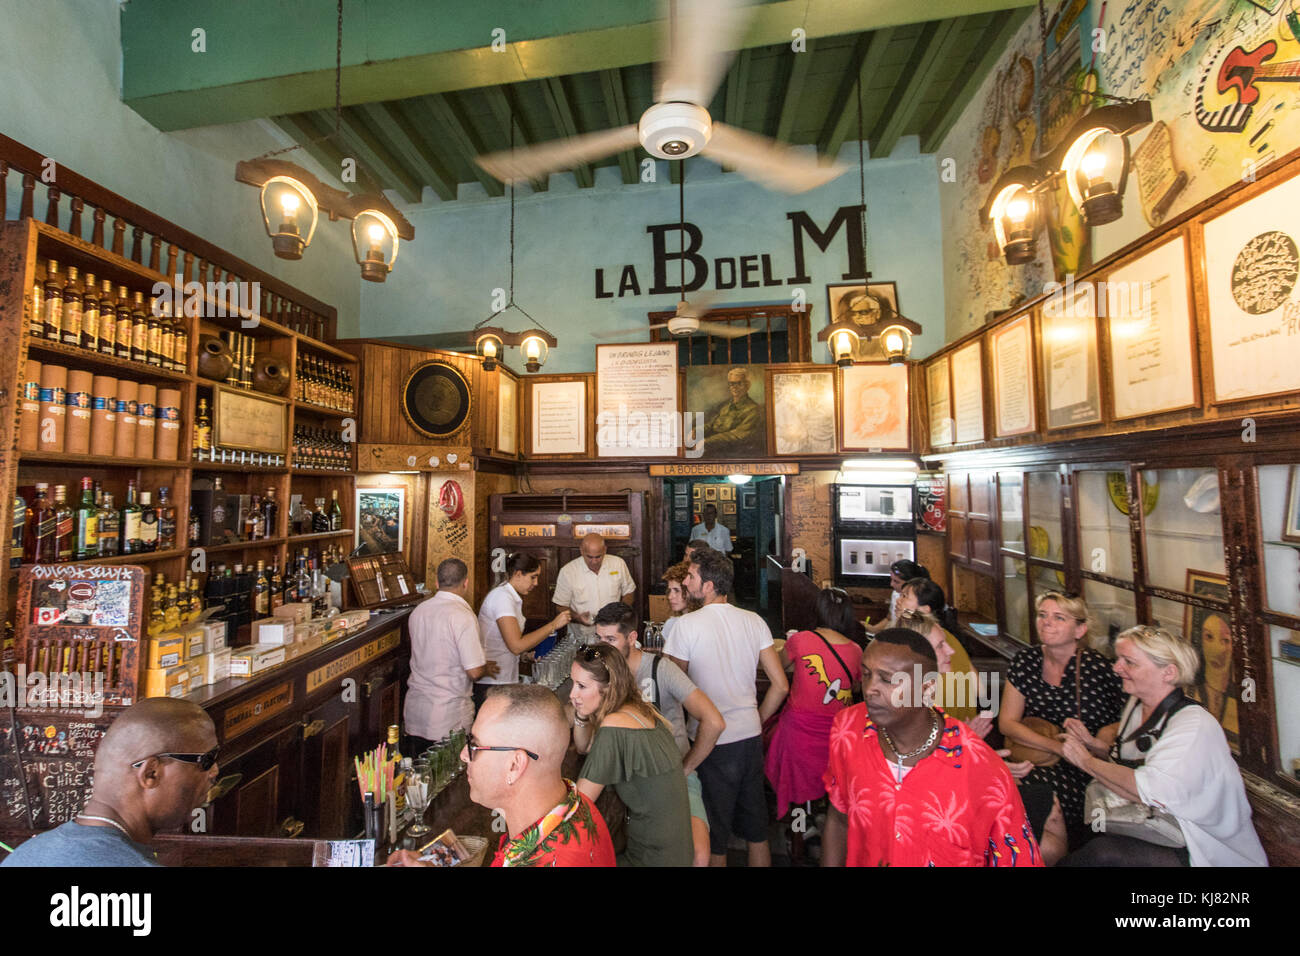 La Bodeguita Del Medio famous bar in Old Havana, Cuba Stock Photo